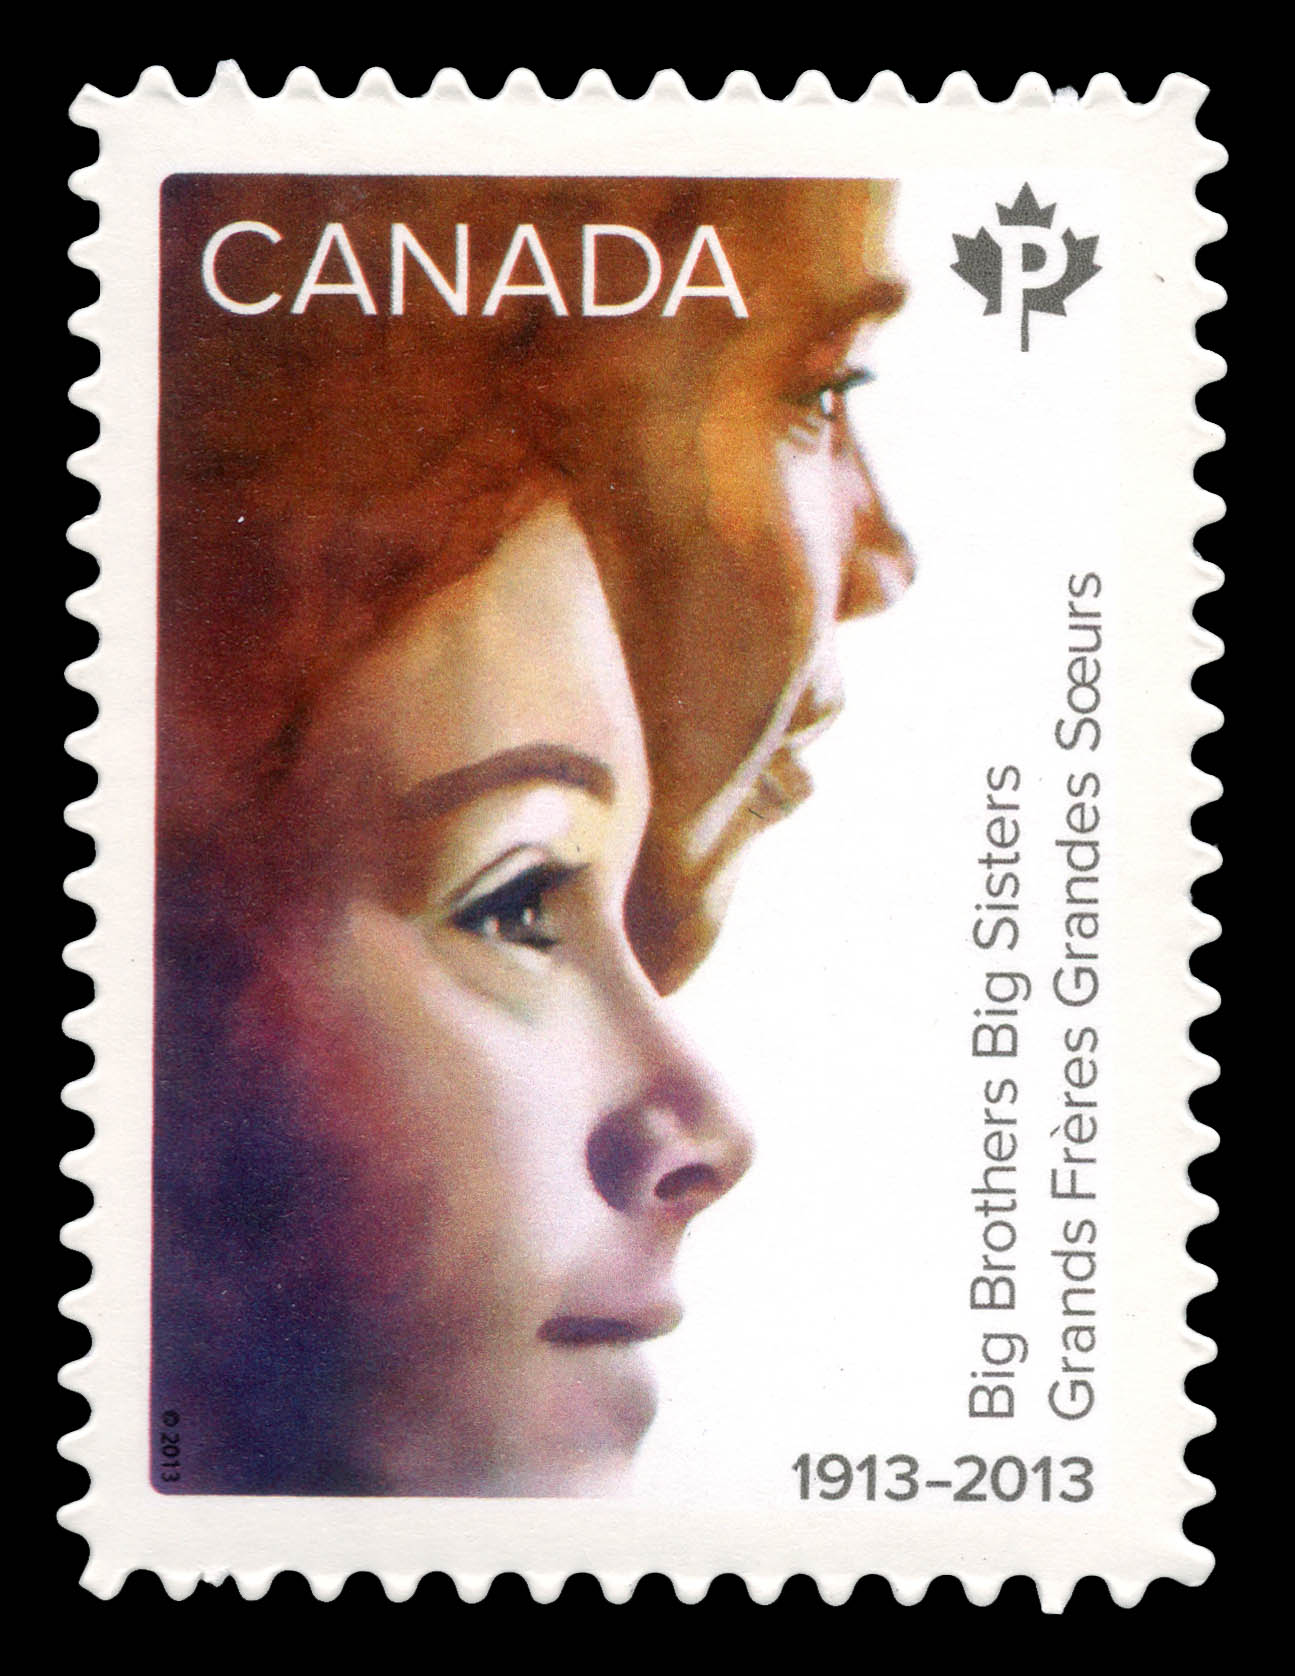 Big Brothers Big Sisters of Canada, 100th anniversary Canada Postage Stamp